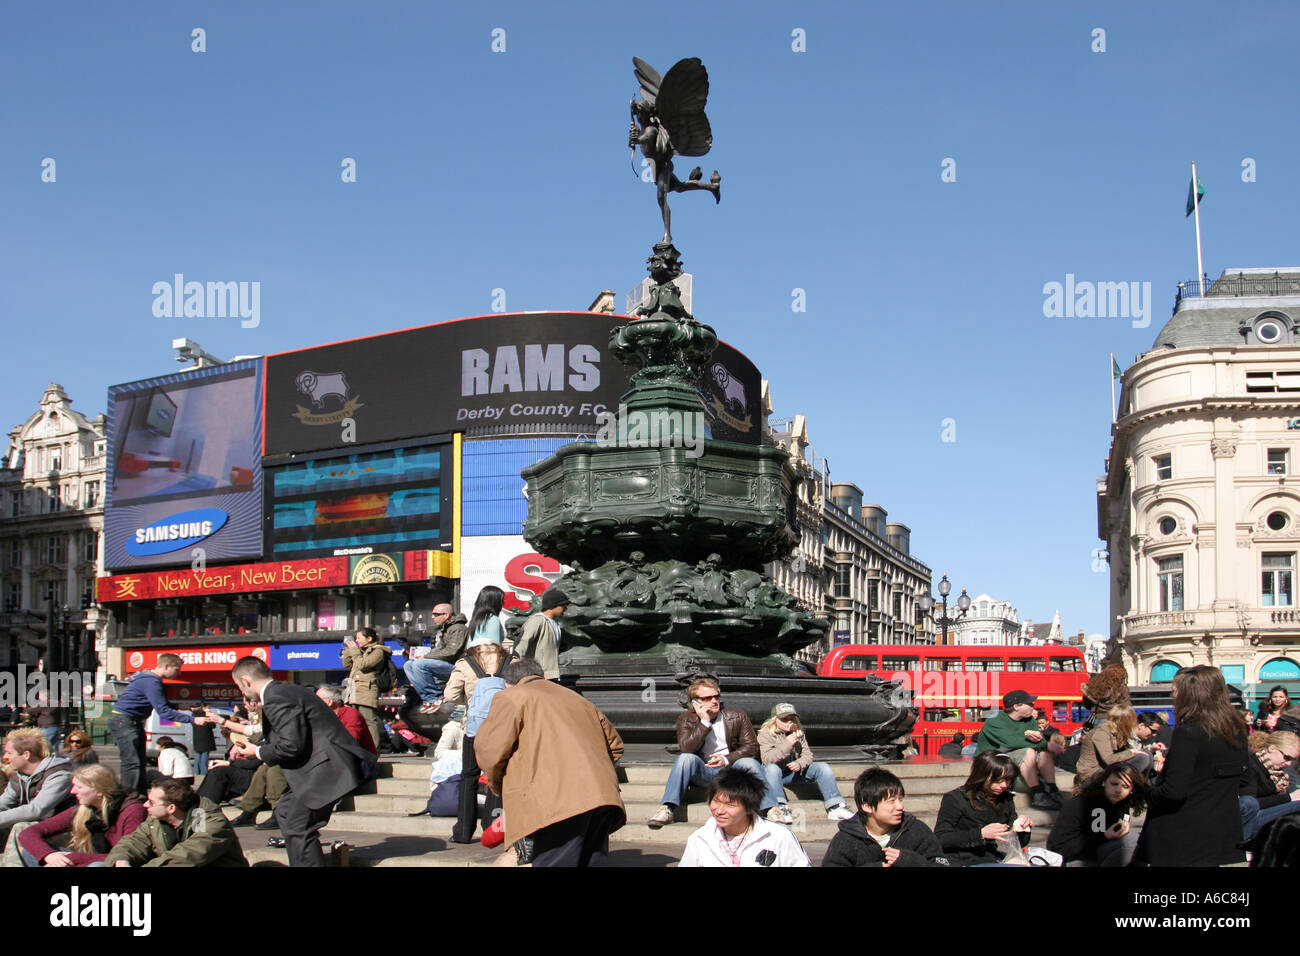 Piccadilly Circus, London - Stock Image